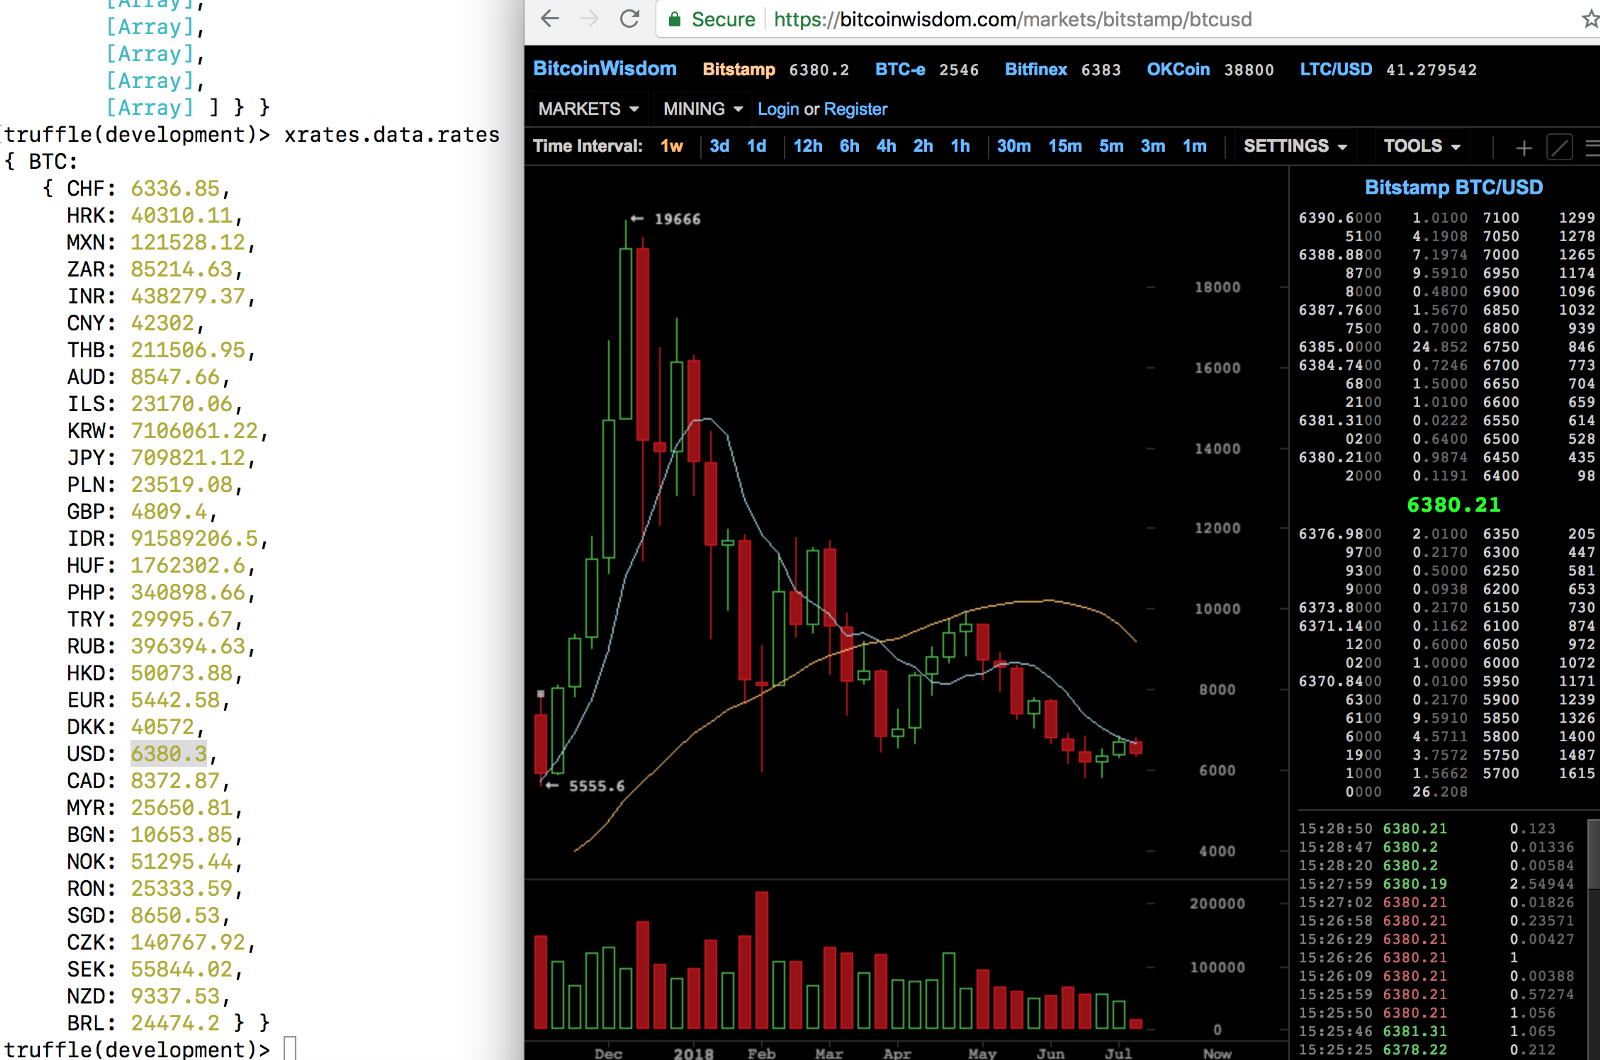 A Biased View of Transfer From Coinbase To Bitstamp